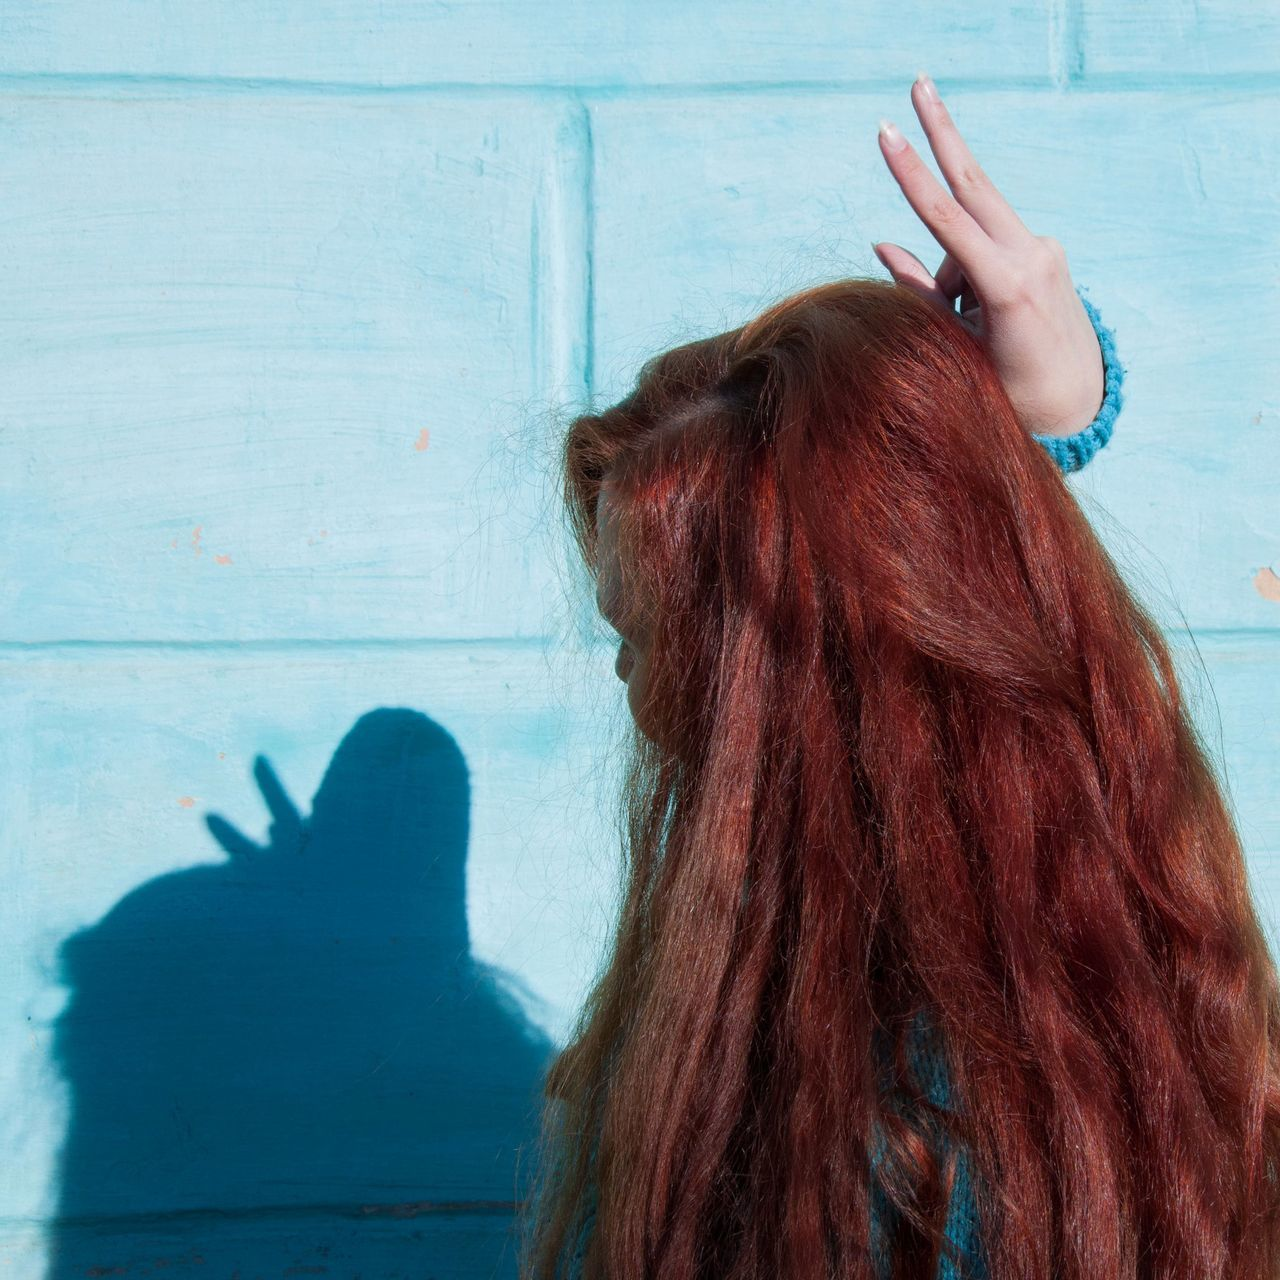 real people, human hair, one person, long hair, lifestyles, hairstyle, rear view, dyed hair, leisure activity, women, day, indoors, hair care, human hand, close-up, people